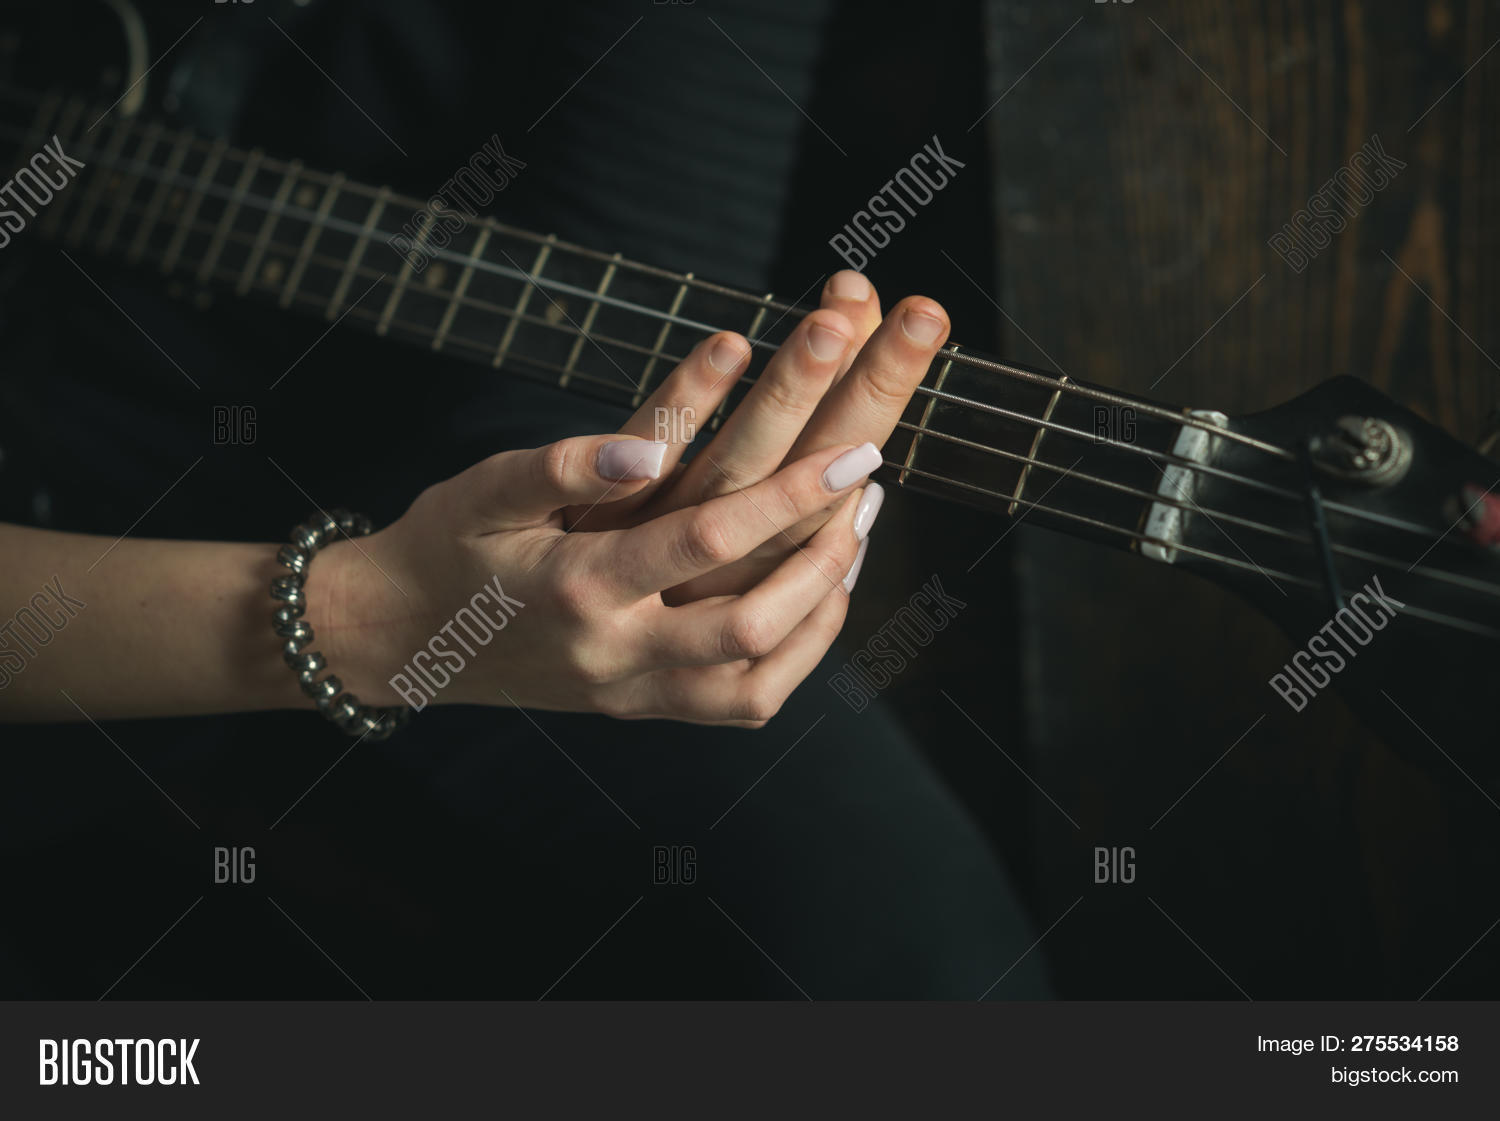 Music Their Passion  Image & Photo (Free Trial) | Bigstock